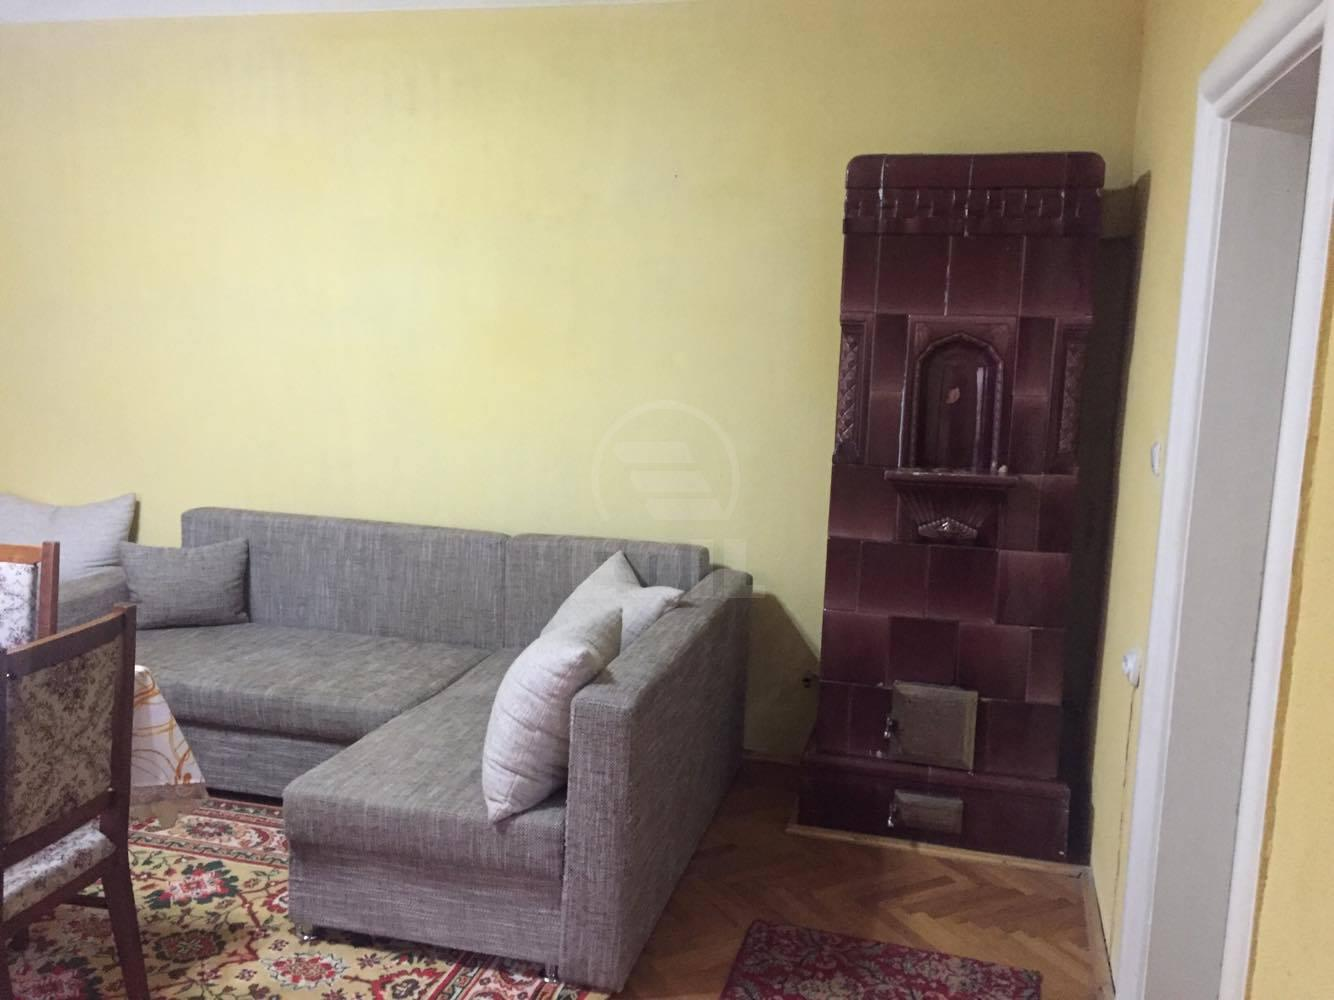 Apartment for rent 3 rooms, APCJ281600-11